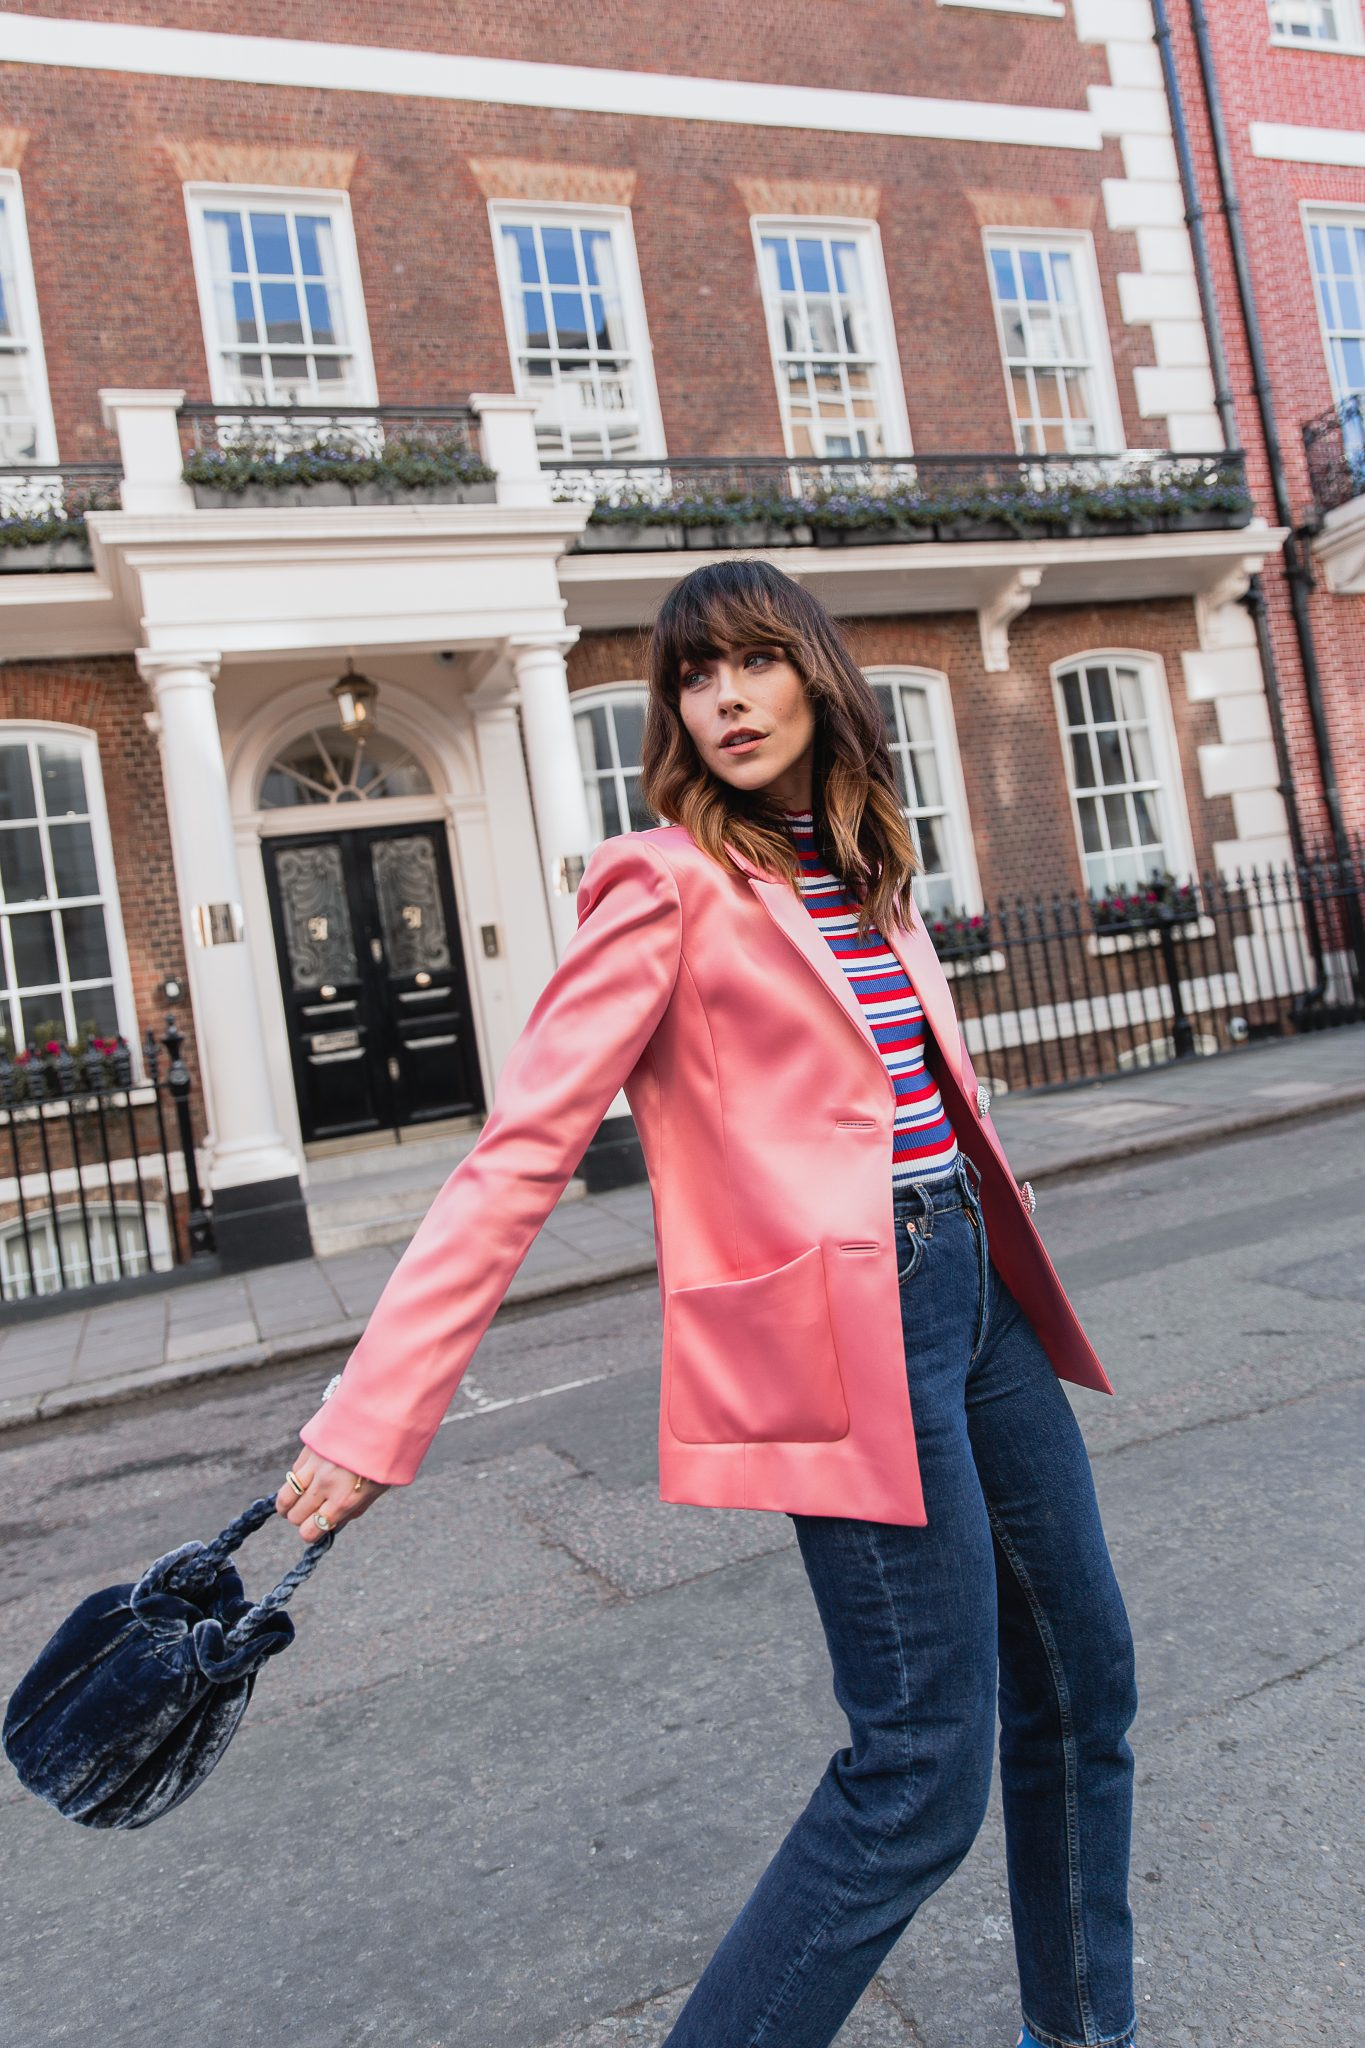 MEGAN ELLABY HOW TO STYLE CONVERSE THIS SPRING